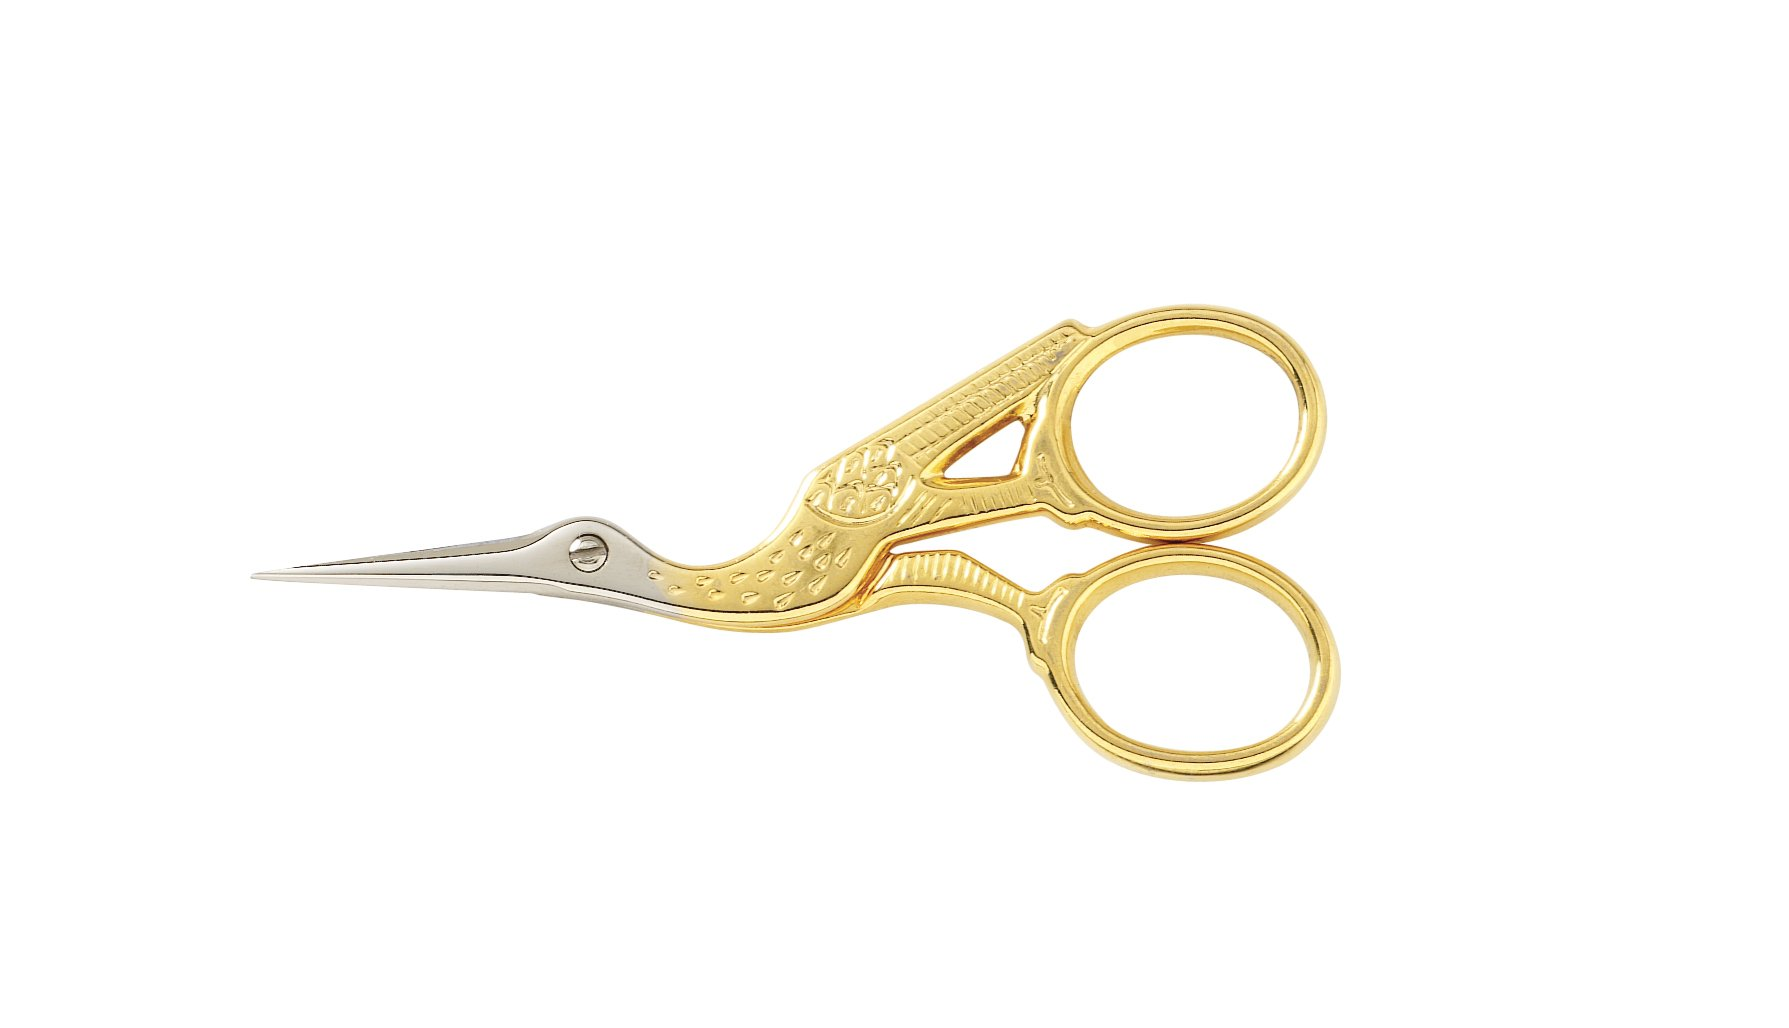 Gingher 01-005280 Stork Embroidery Scissors, 3.5 Inch, Gold